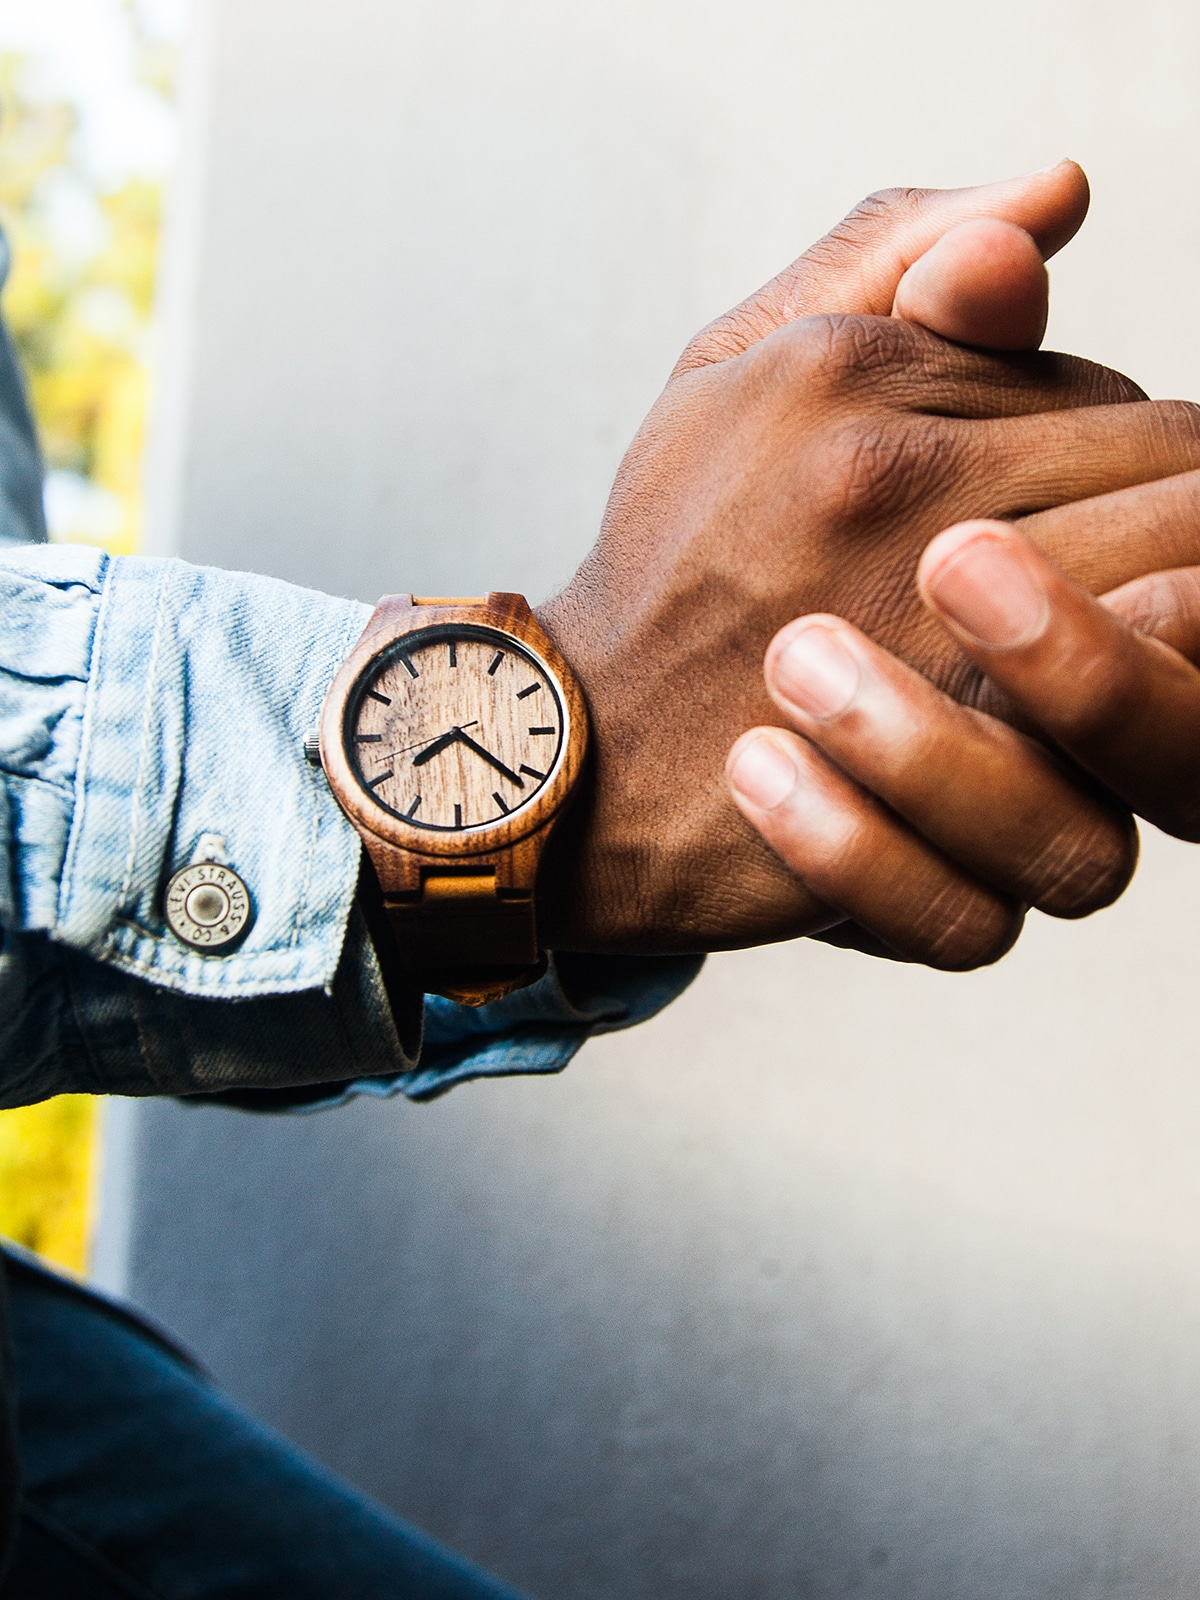 Select from a wide selection of personalized wooden watches at Grain + Oak., including walnut, ebony, maple, sandalwood, and more.